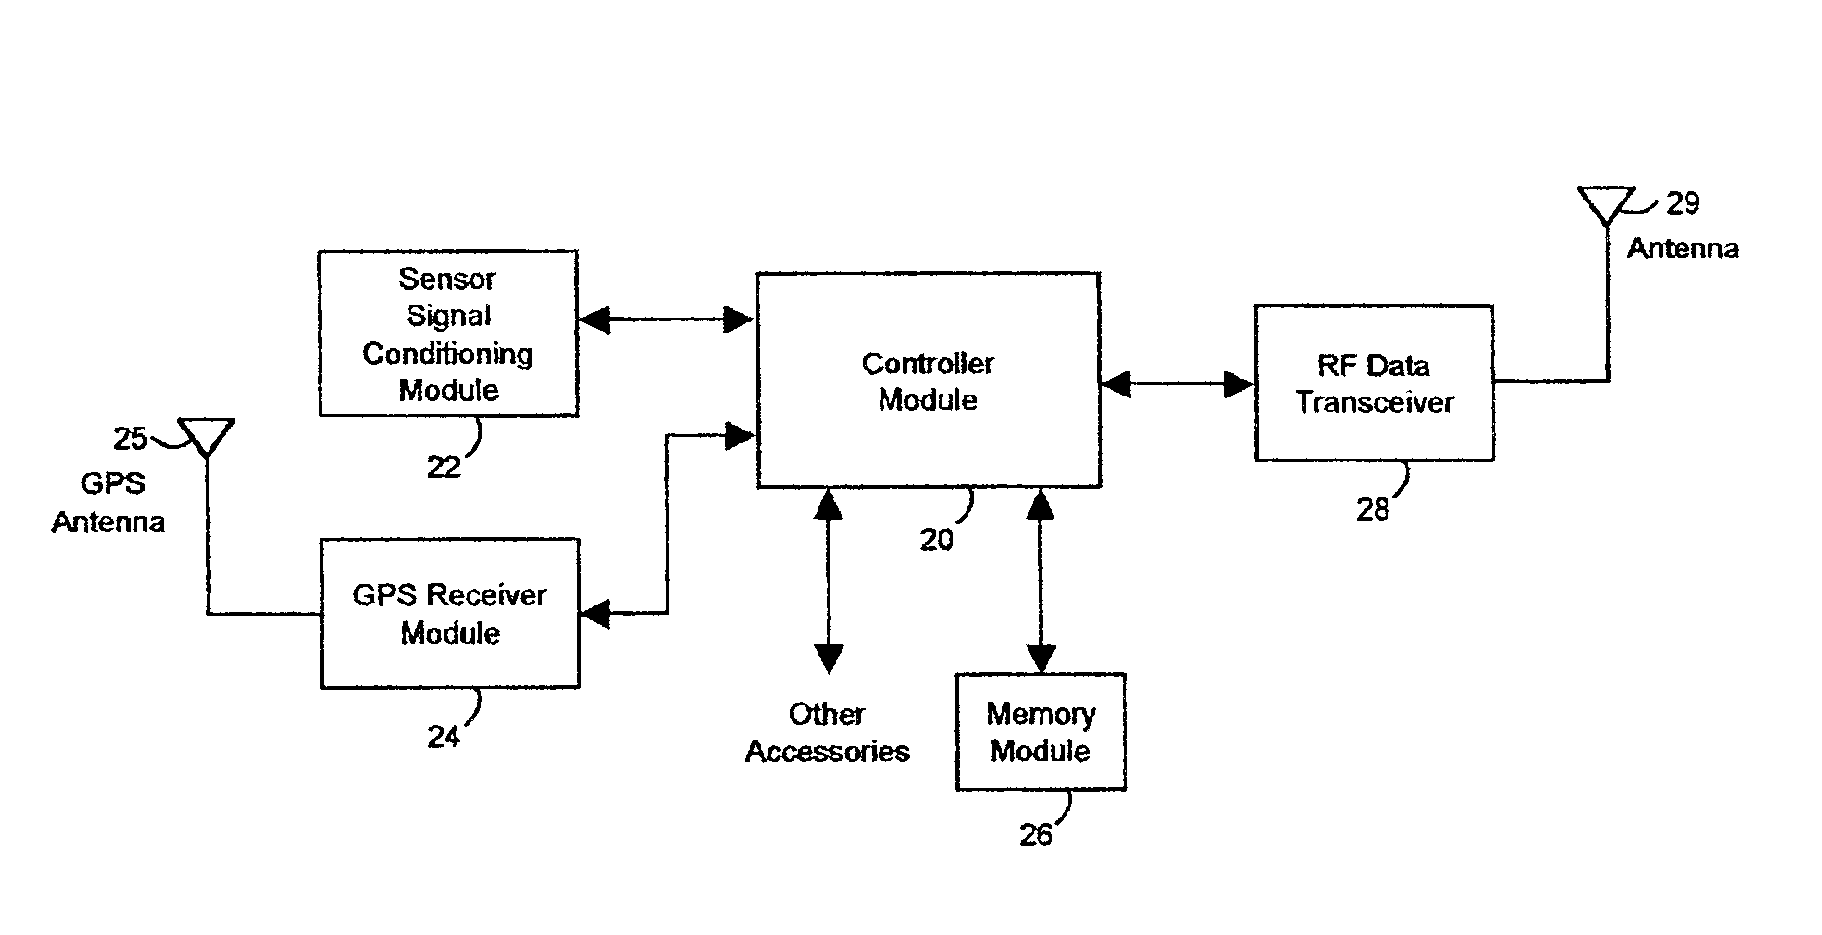 X y recorder block diagram blueraritanfo patent us selfcontained flight data recorder with wiring diagram ccuart Gallery